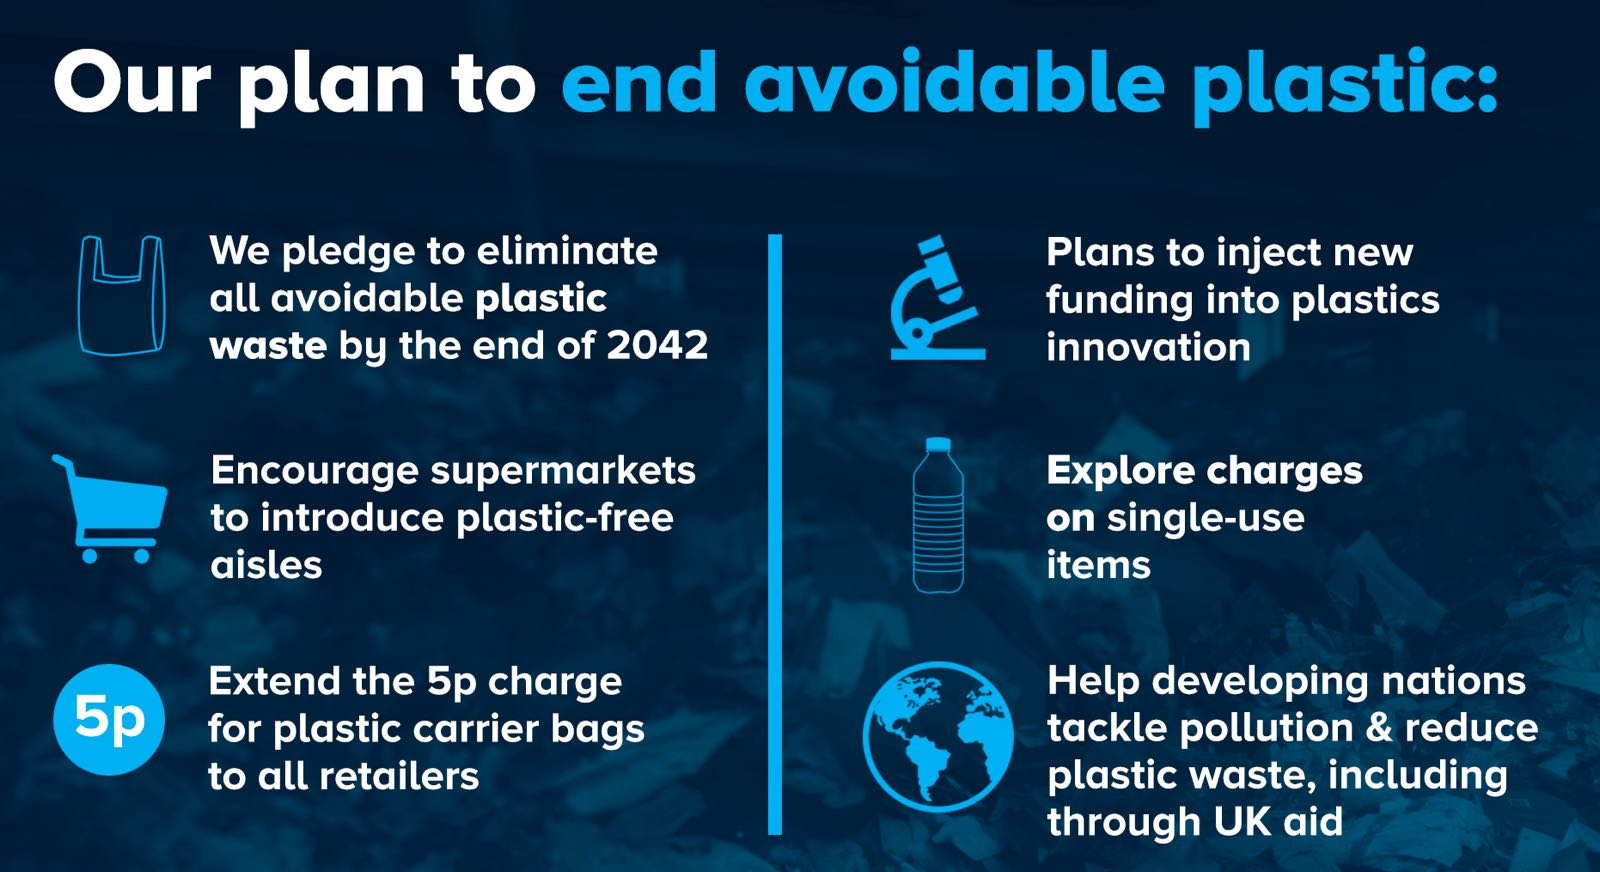 We are committed to protecting our oceans and environment from waste plastics.